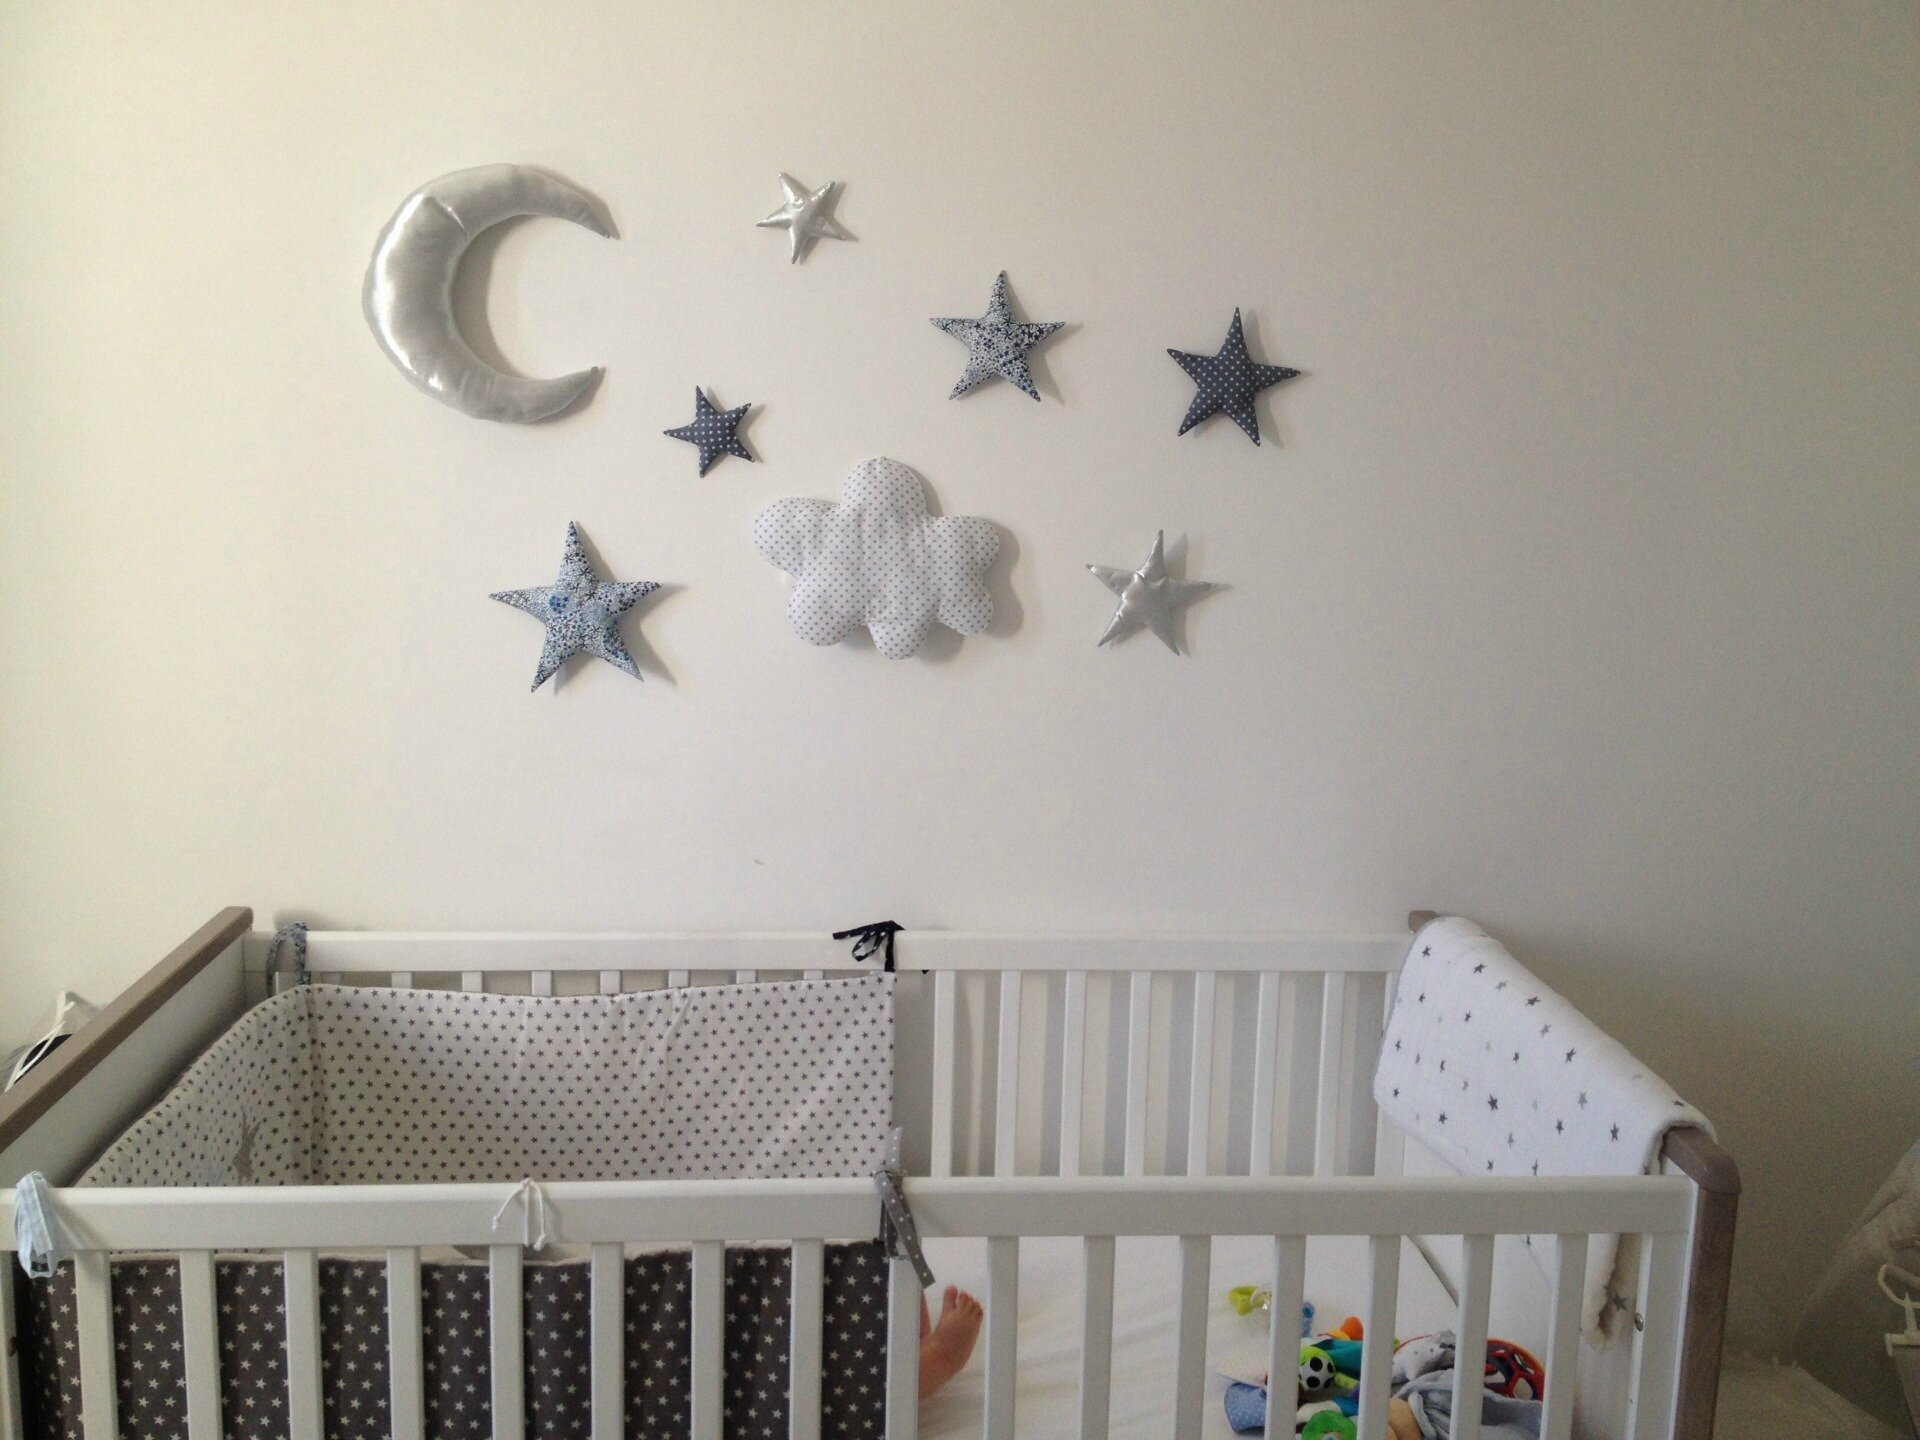 D coration murale lune toiles nuage photo de Objet decoration murale design